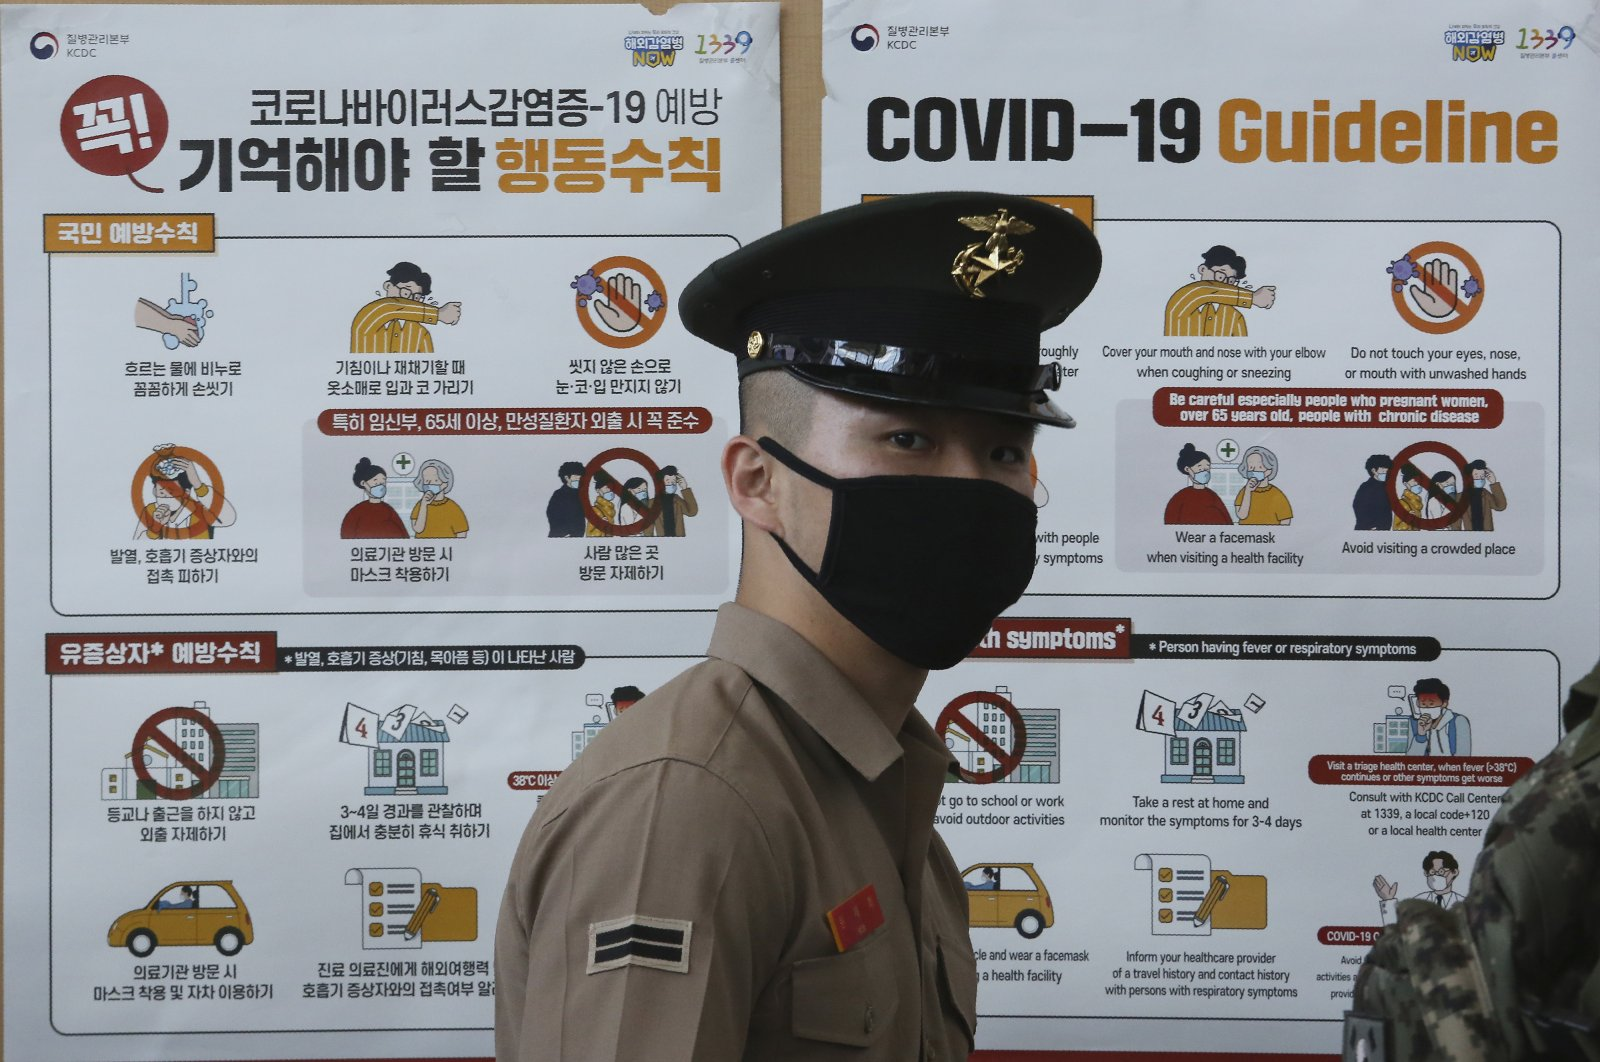 A South Korean Marine wearing a face mask stands in front of posters about precautions against the new coronavirus at Seoul Railway Station, South Korea, May 8, 2020. (AP Photo)